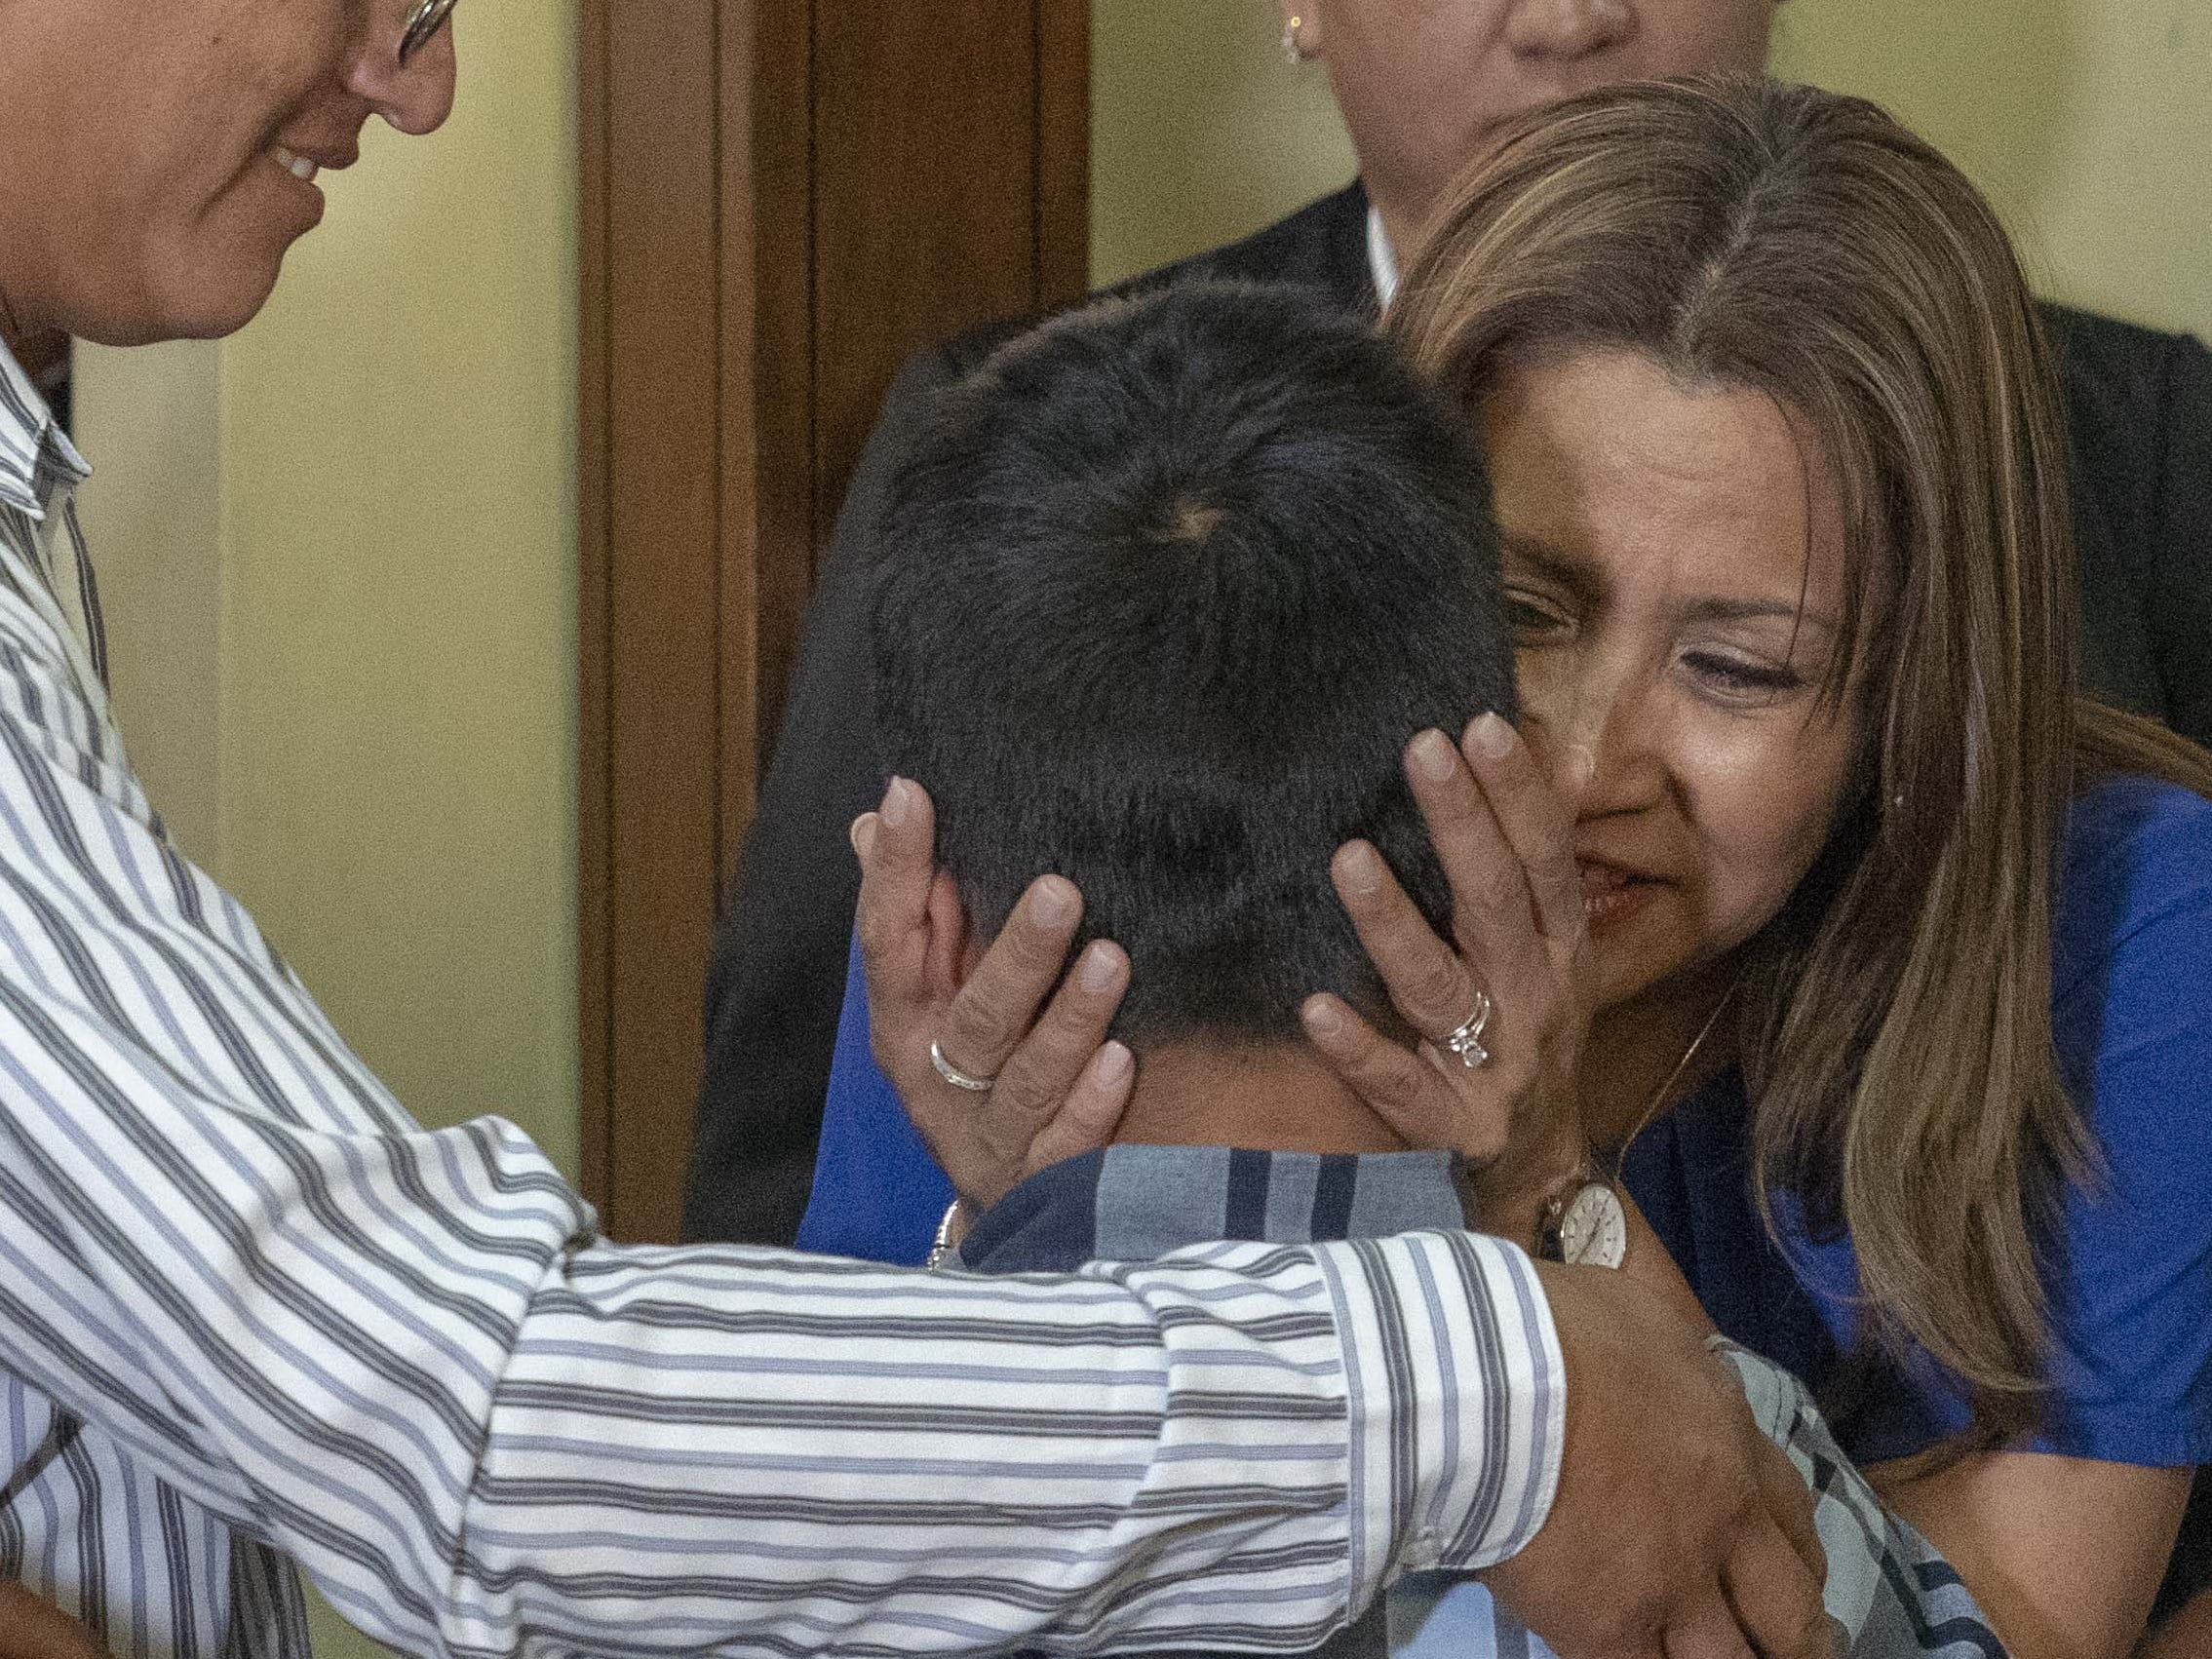 The First Lady of Guatemala, Patricia Marroquin (right) hugs a boy after he was deported and reunified with his father at the shelter in Guatemala on Aug. 7, 2018.